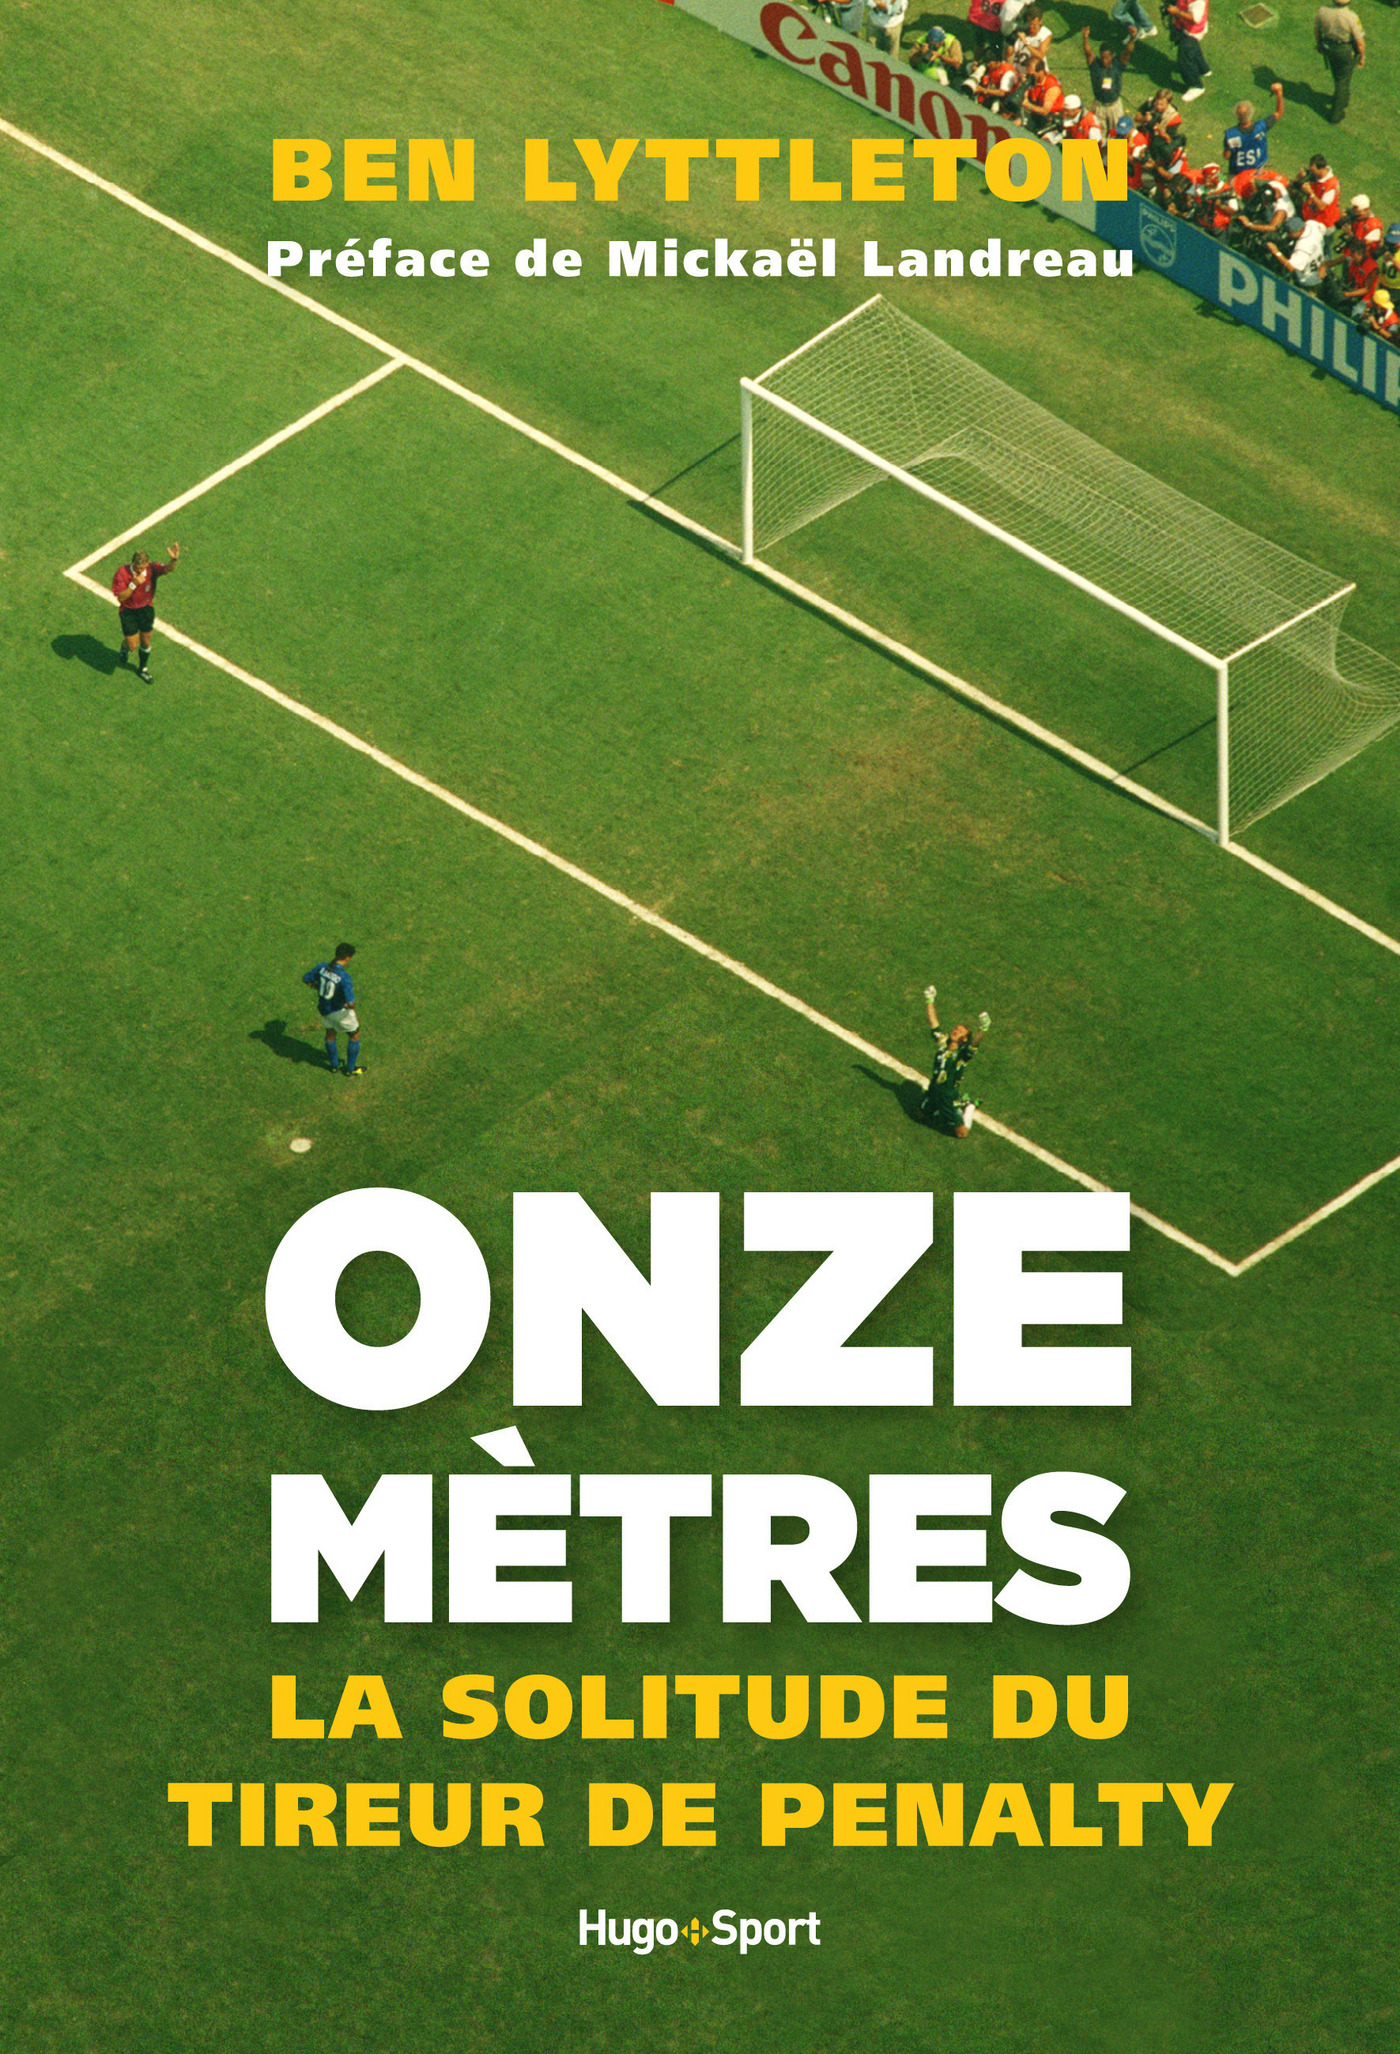 Onze mètres, la solitude du tireur de penalty